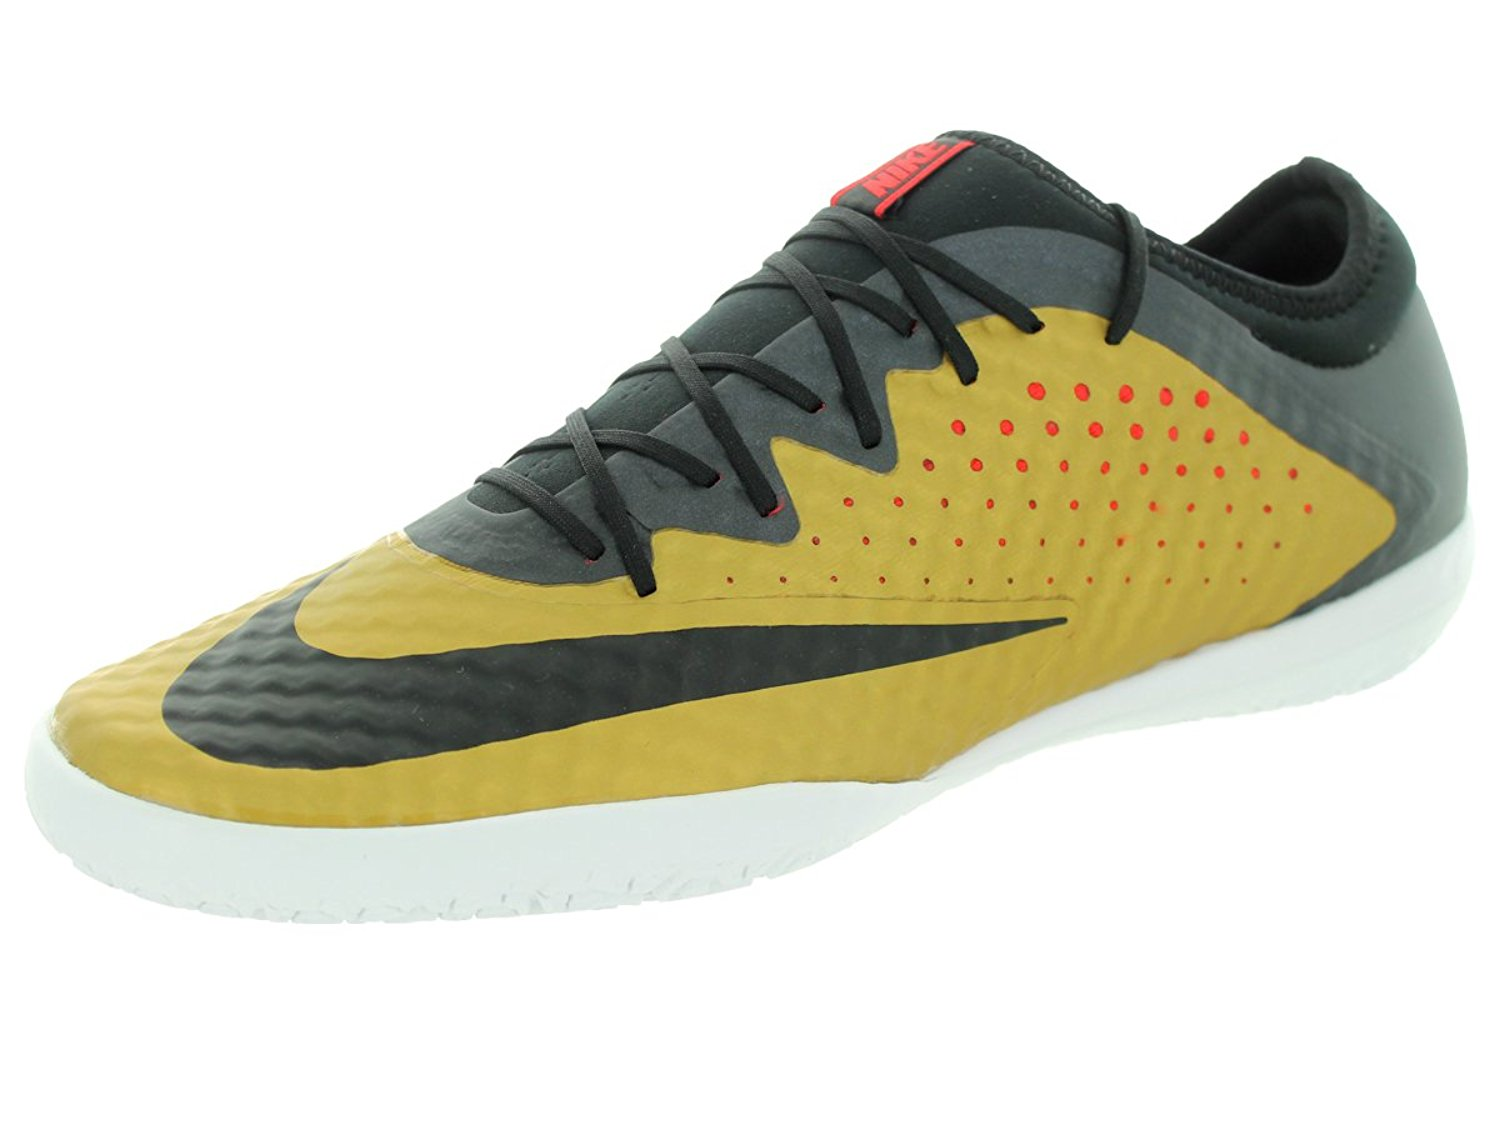 a2843bc0e62 Get Quotations · Nike Men s Mercurialx Finale IC Indoor Soccer Shoe